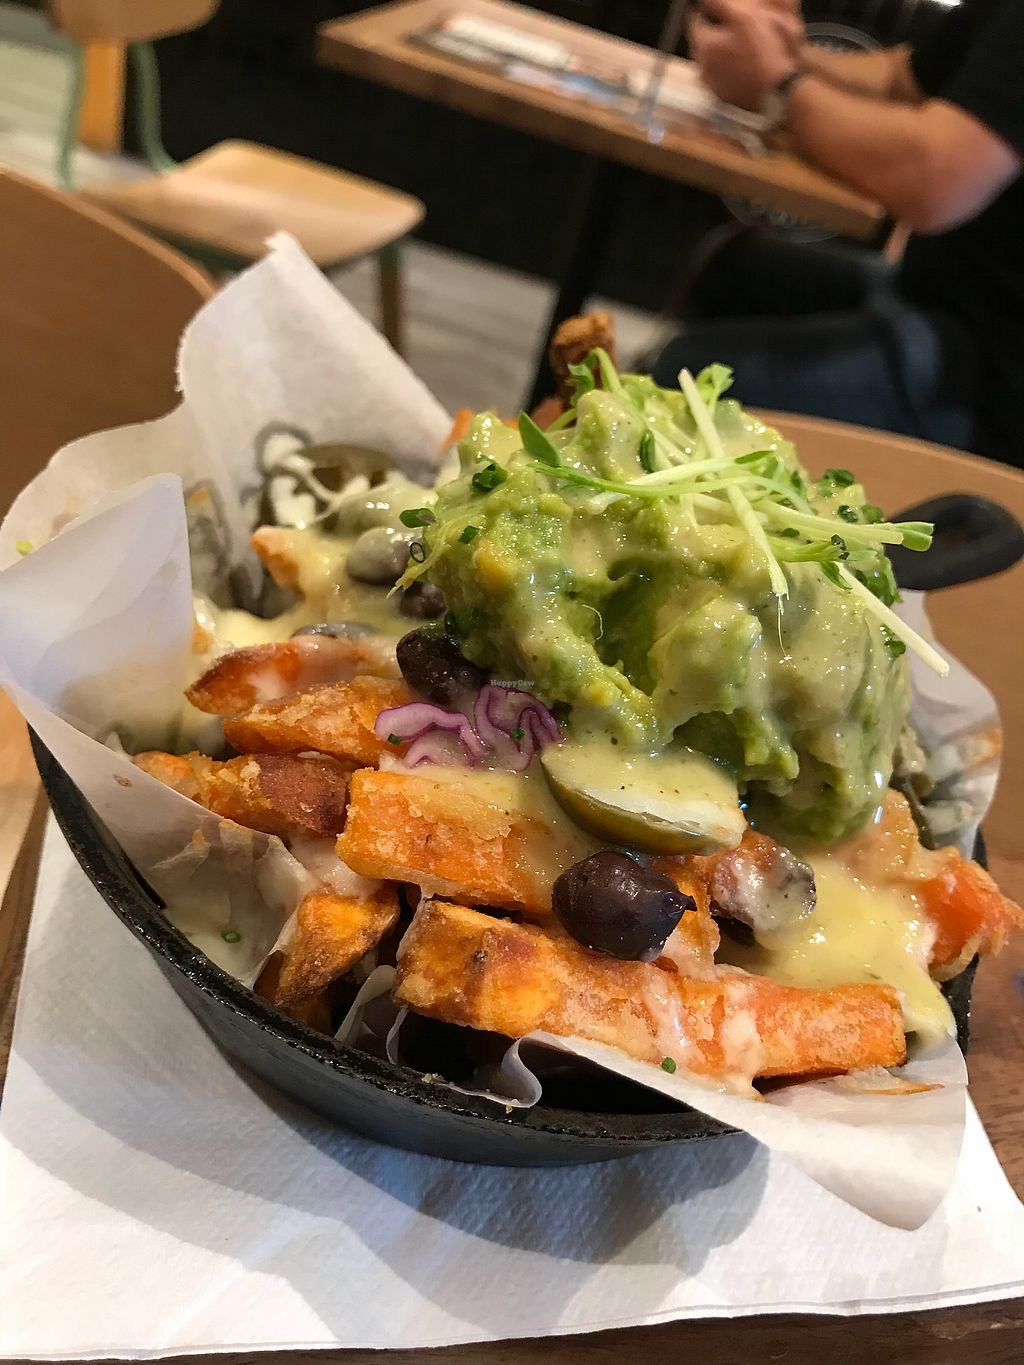 "Photo of Health Freak Cafe  by <a href=""/members/profile/Tildesam"">Tildesam</a> <br/>Loaded sweet potato fries  <br/> March 25, 2018  - <a href='/contact/abuse/image/108072/375643'>Report</a>"